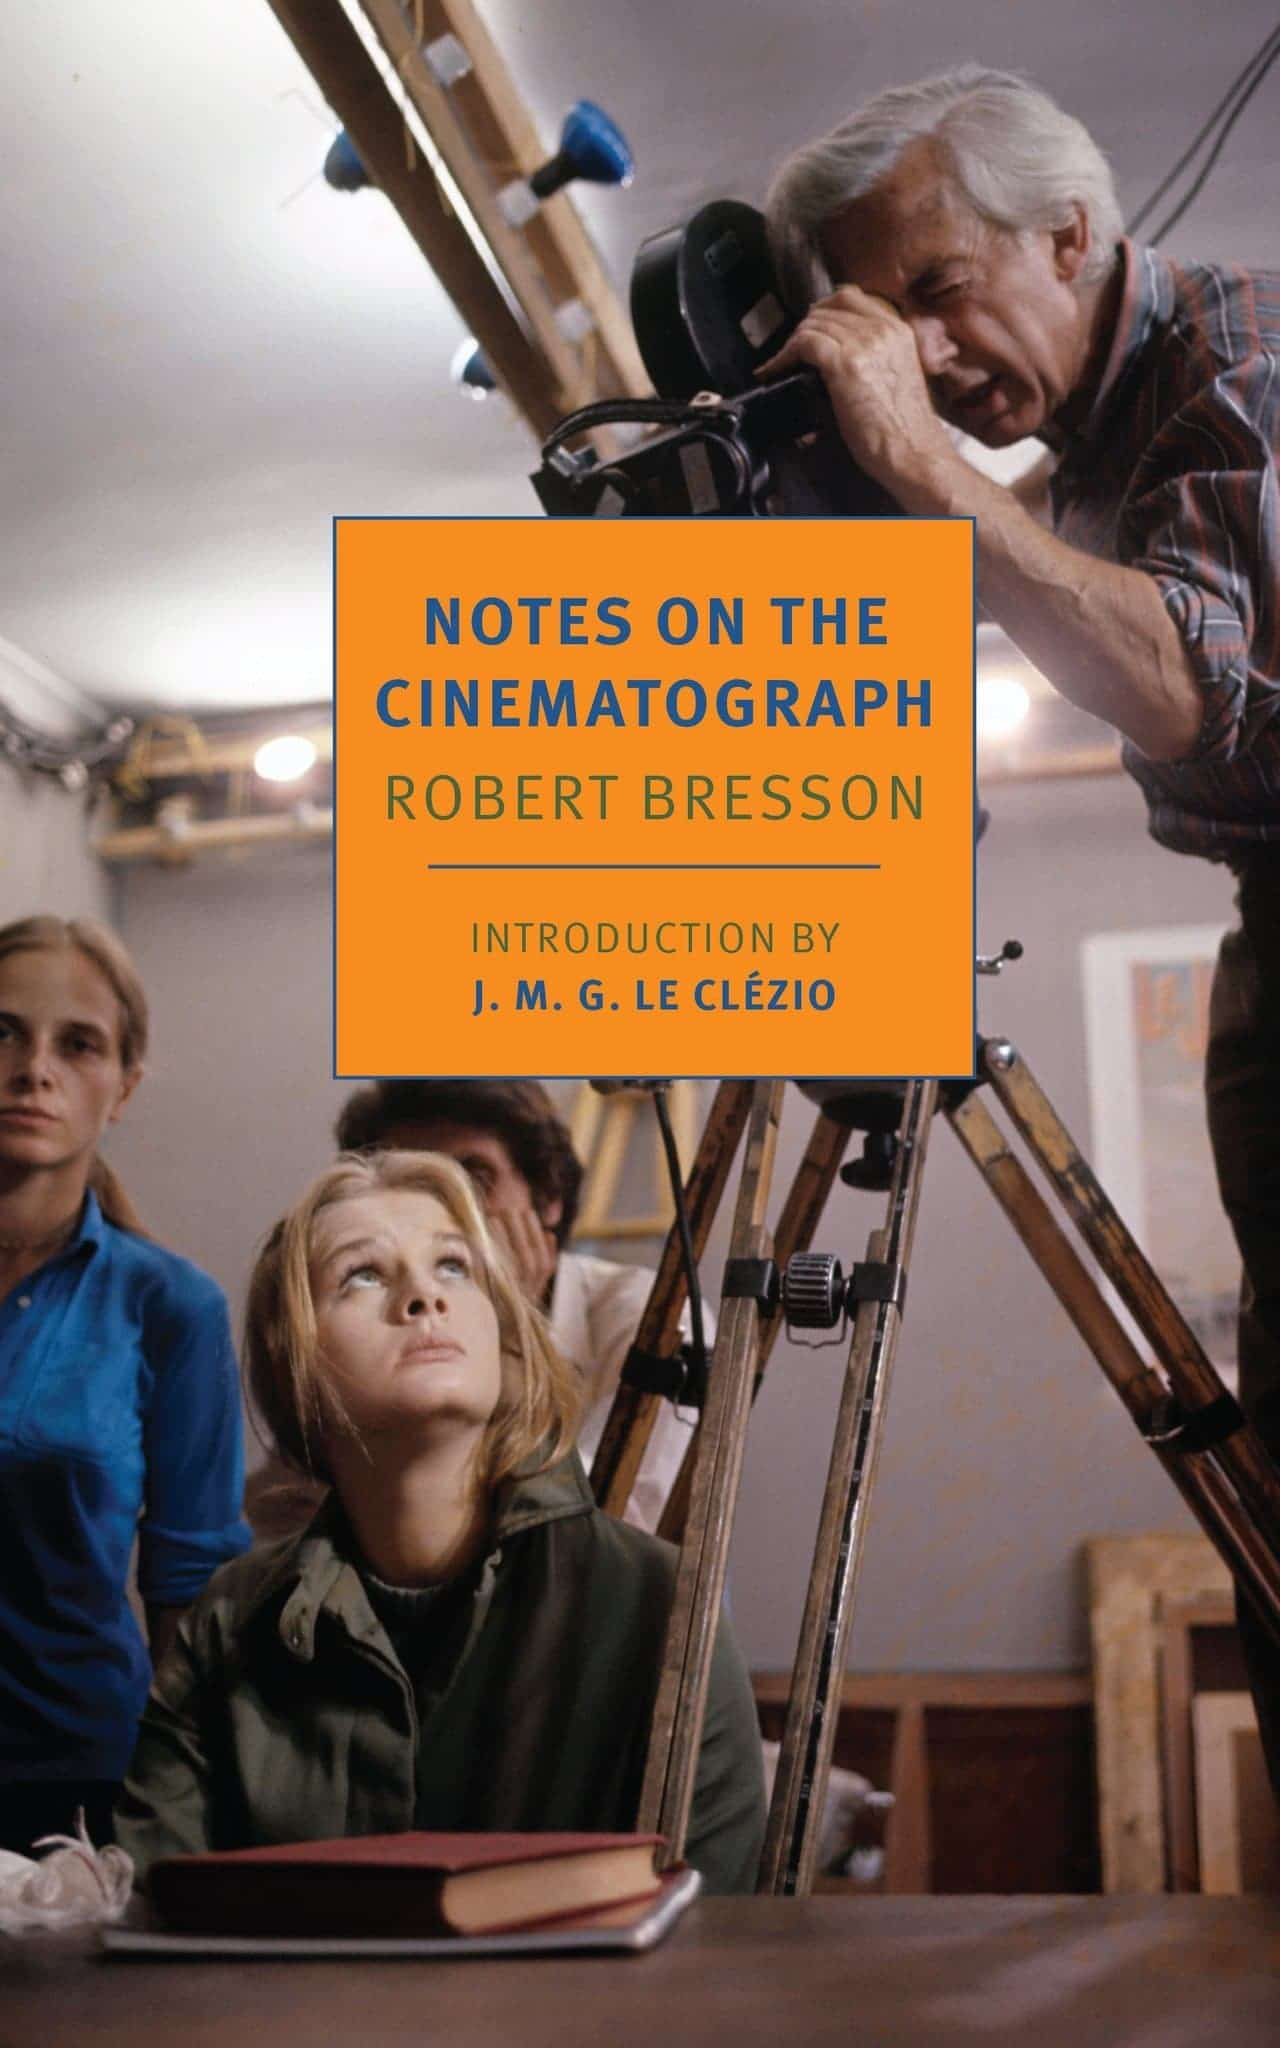 Best Cinematography Books - Notes on the Cinematograph - Robert Bresson - StudioBinder